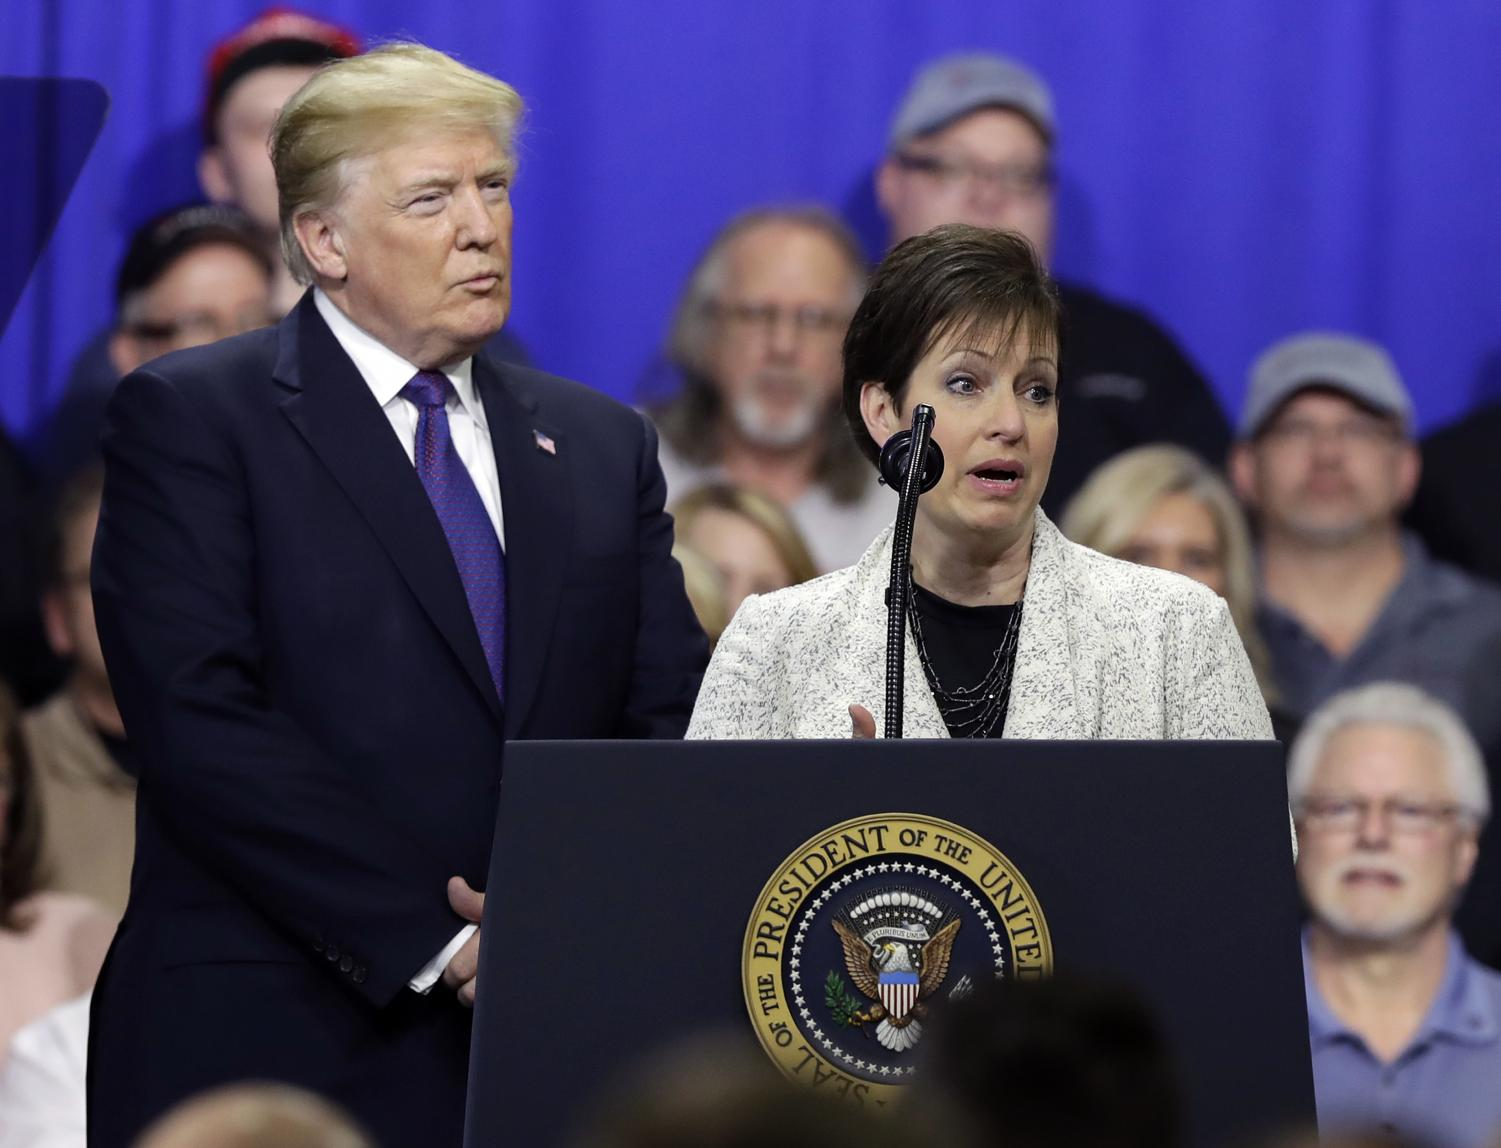 Deana Spoleti speaks as President Donald Trump listens during a speech a visit to Sheffer Corporation, Monday, Feb. 5, 2018, in Blue Ash, Ohio. (AP Photo/Evan Vucci)